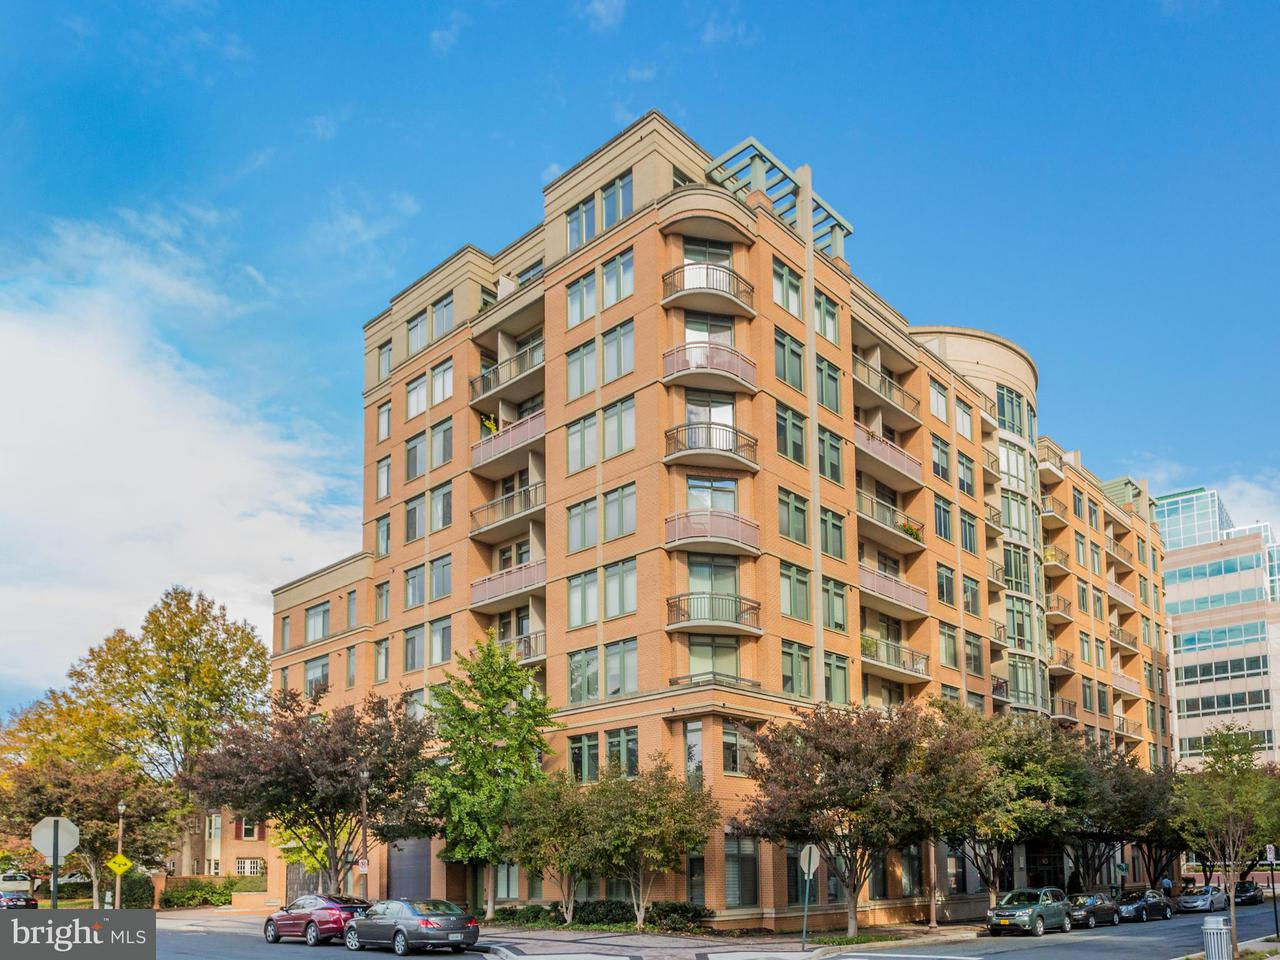 Townhouse for Sale at 3625 10TH ST N #209 3625 10TH ST N #209 Arlington, Virginia 22201 United States